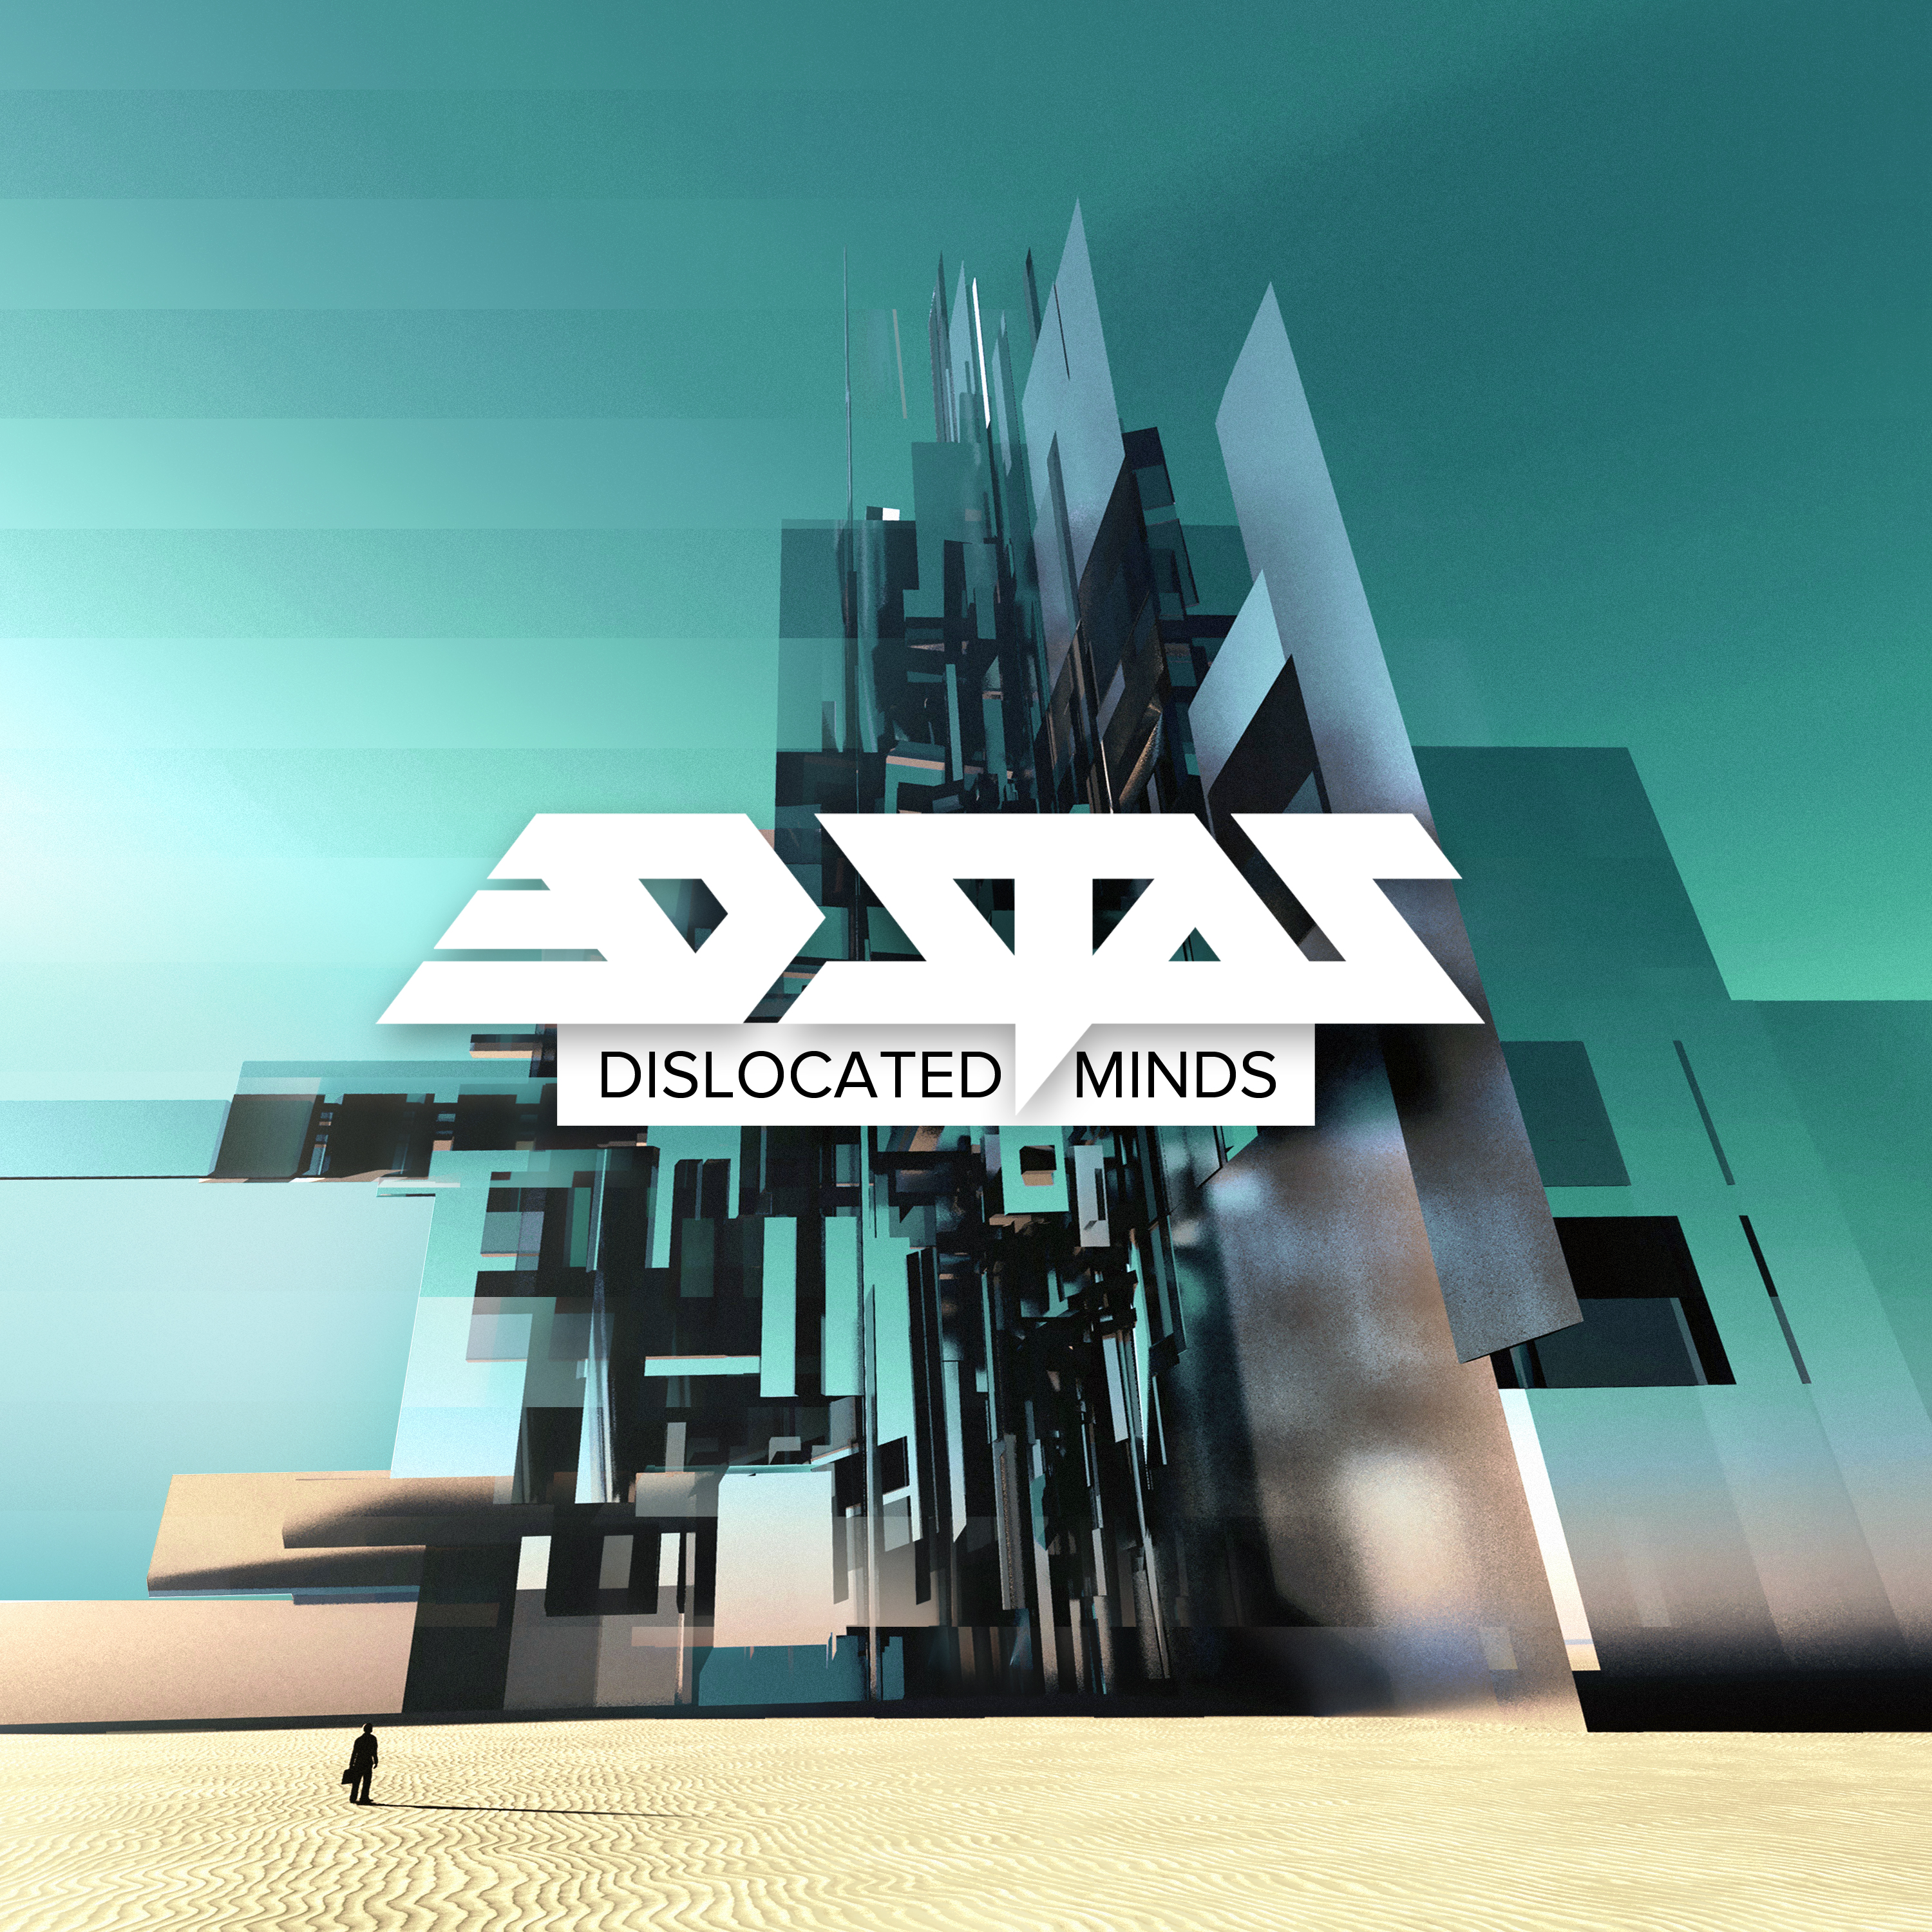 3D Stas - Dislocated Minds (Single) Image